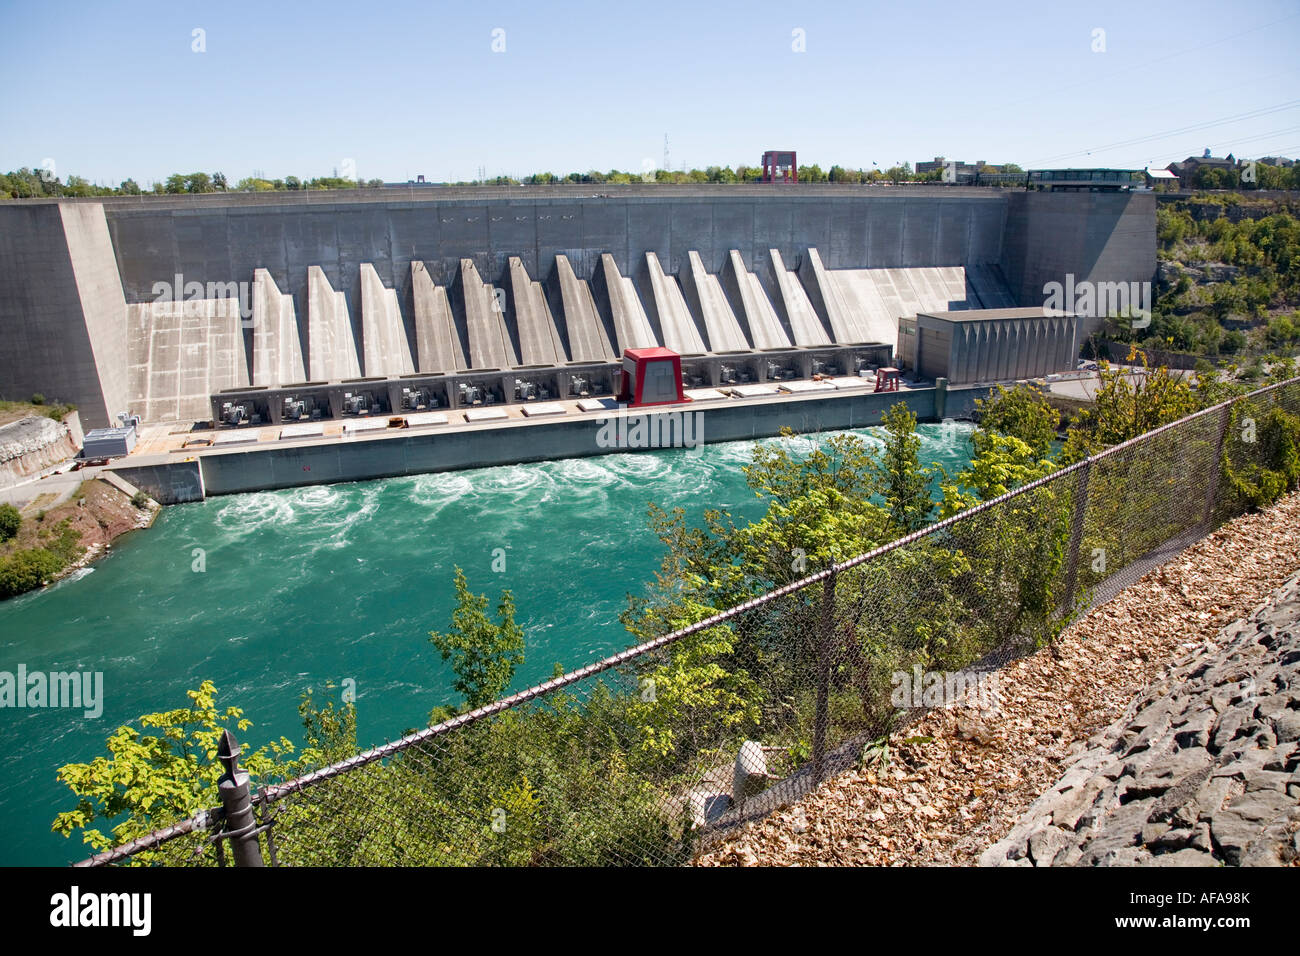 Ontario Hydroelectric Power Plant Manual Guide Wiring Diagram Mini Hydro Electricity Niagara River Canada Rh Alamy Com